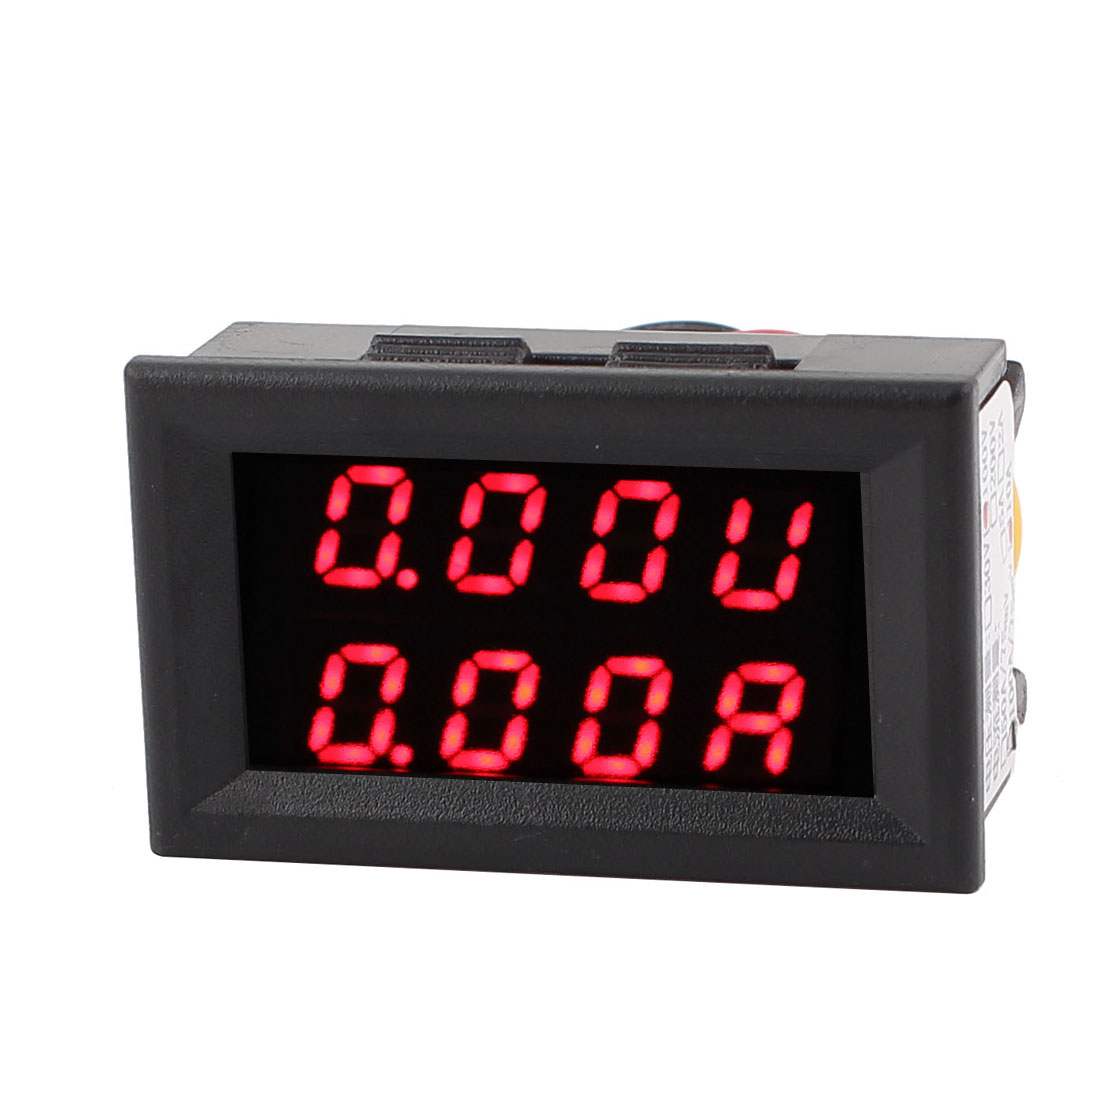 DC 0-100V 0-10A Red Red LED Dual Digital Display Panel Voltmeter Ammeter Meter